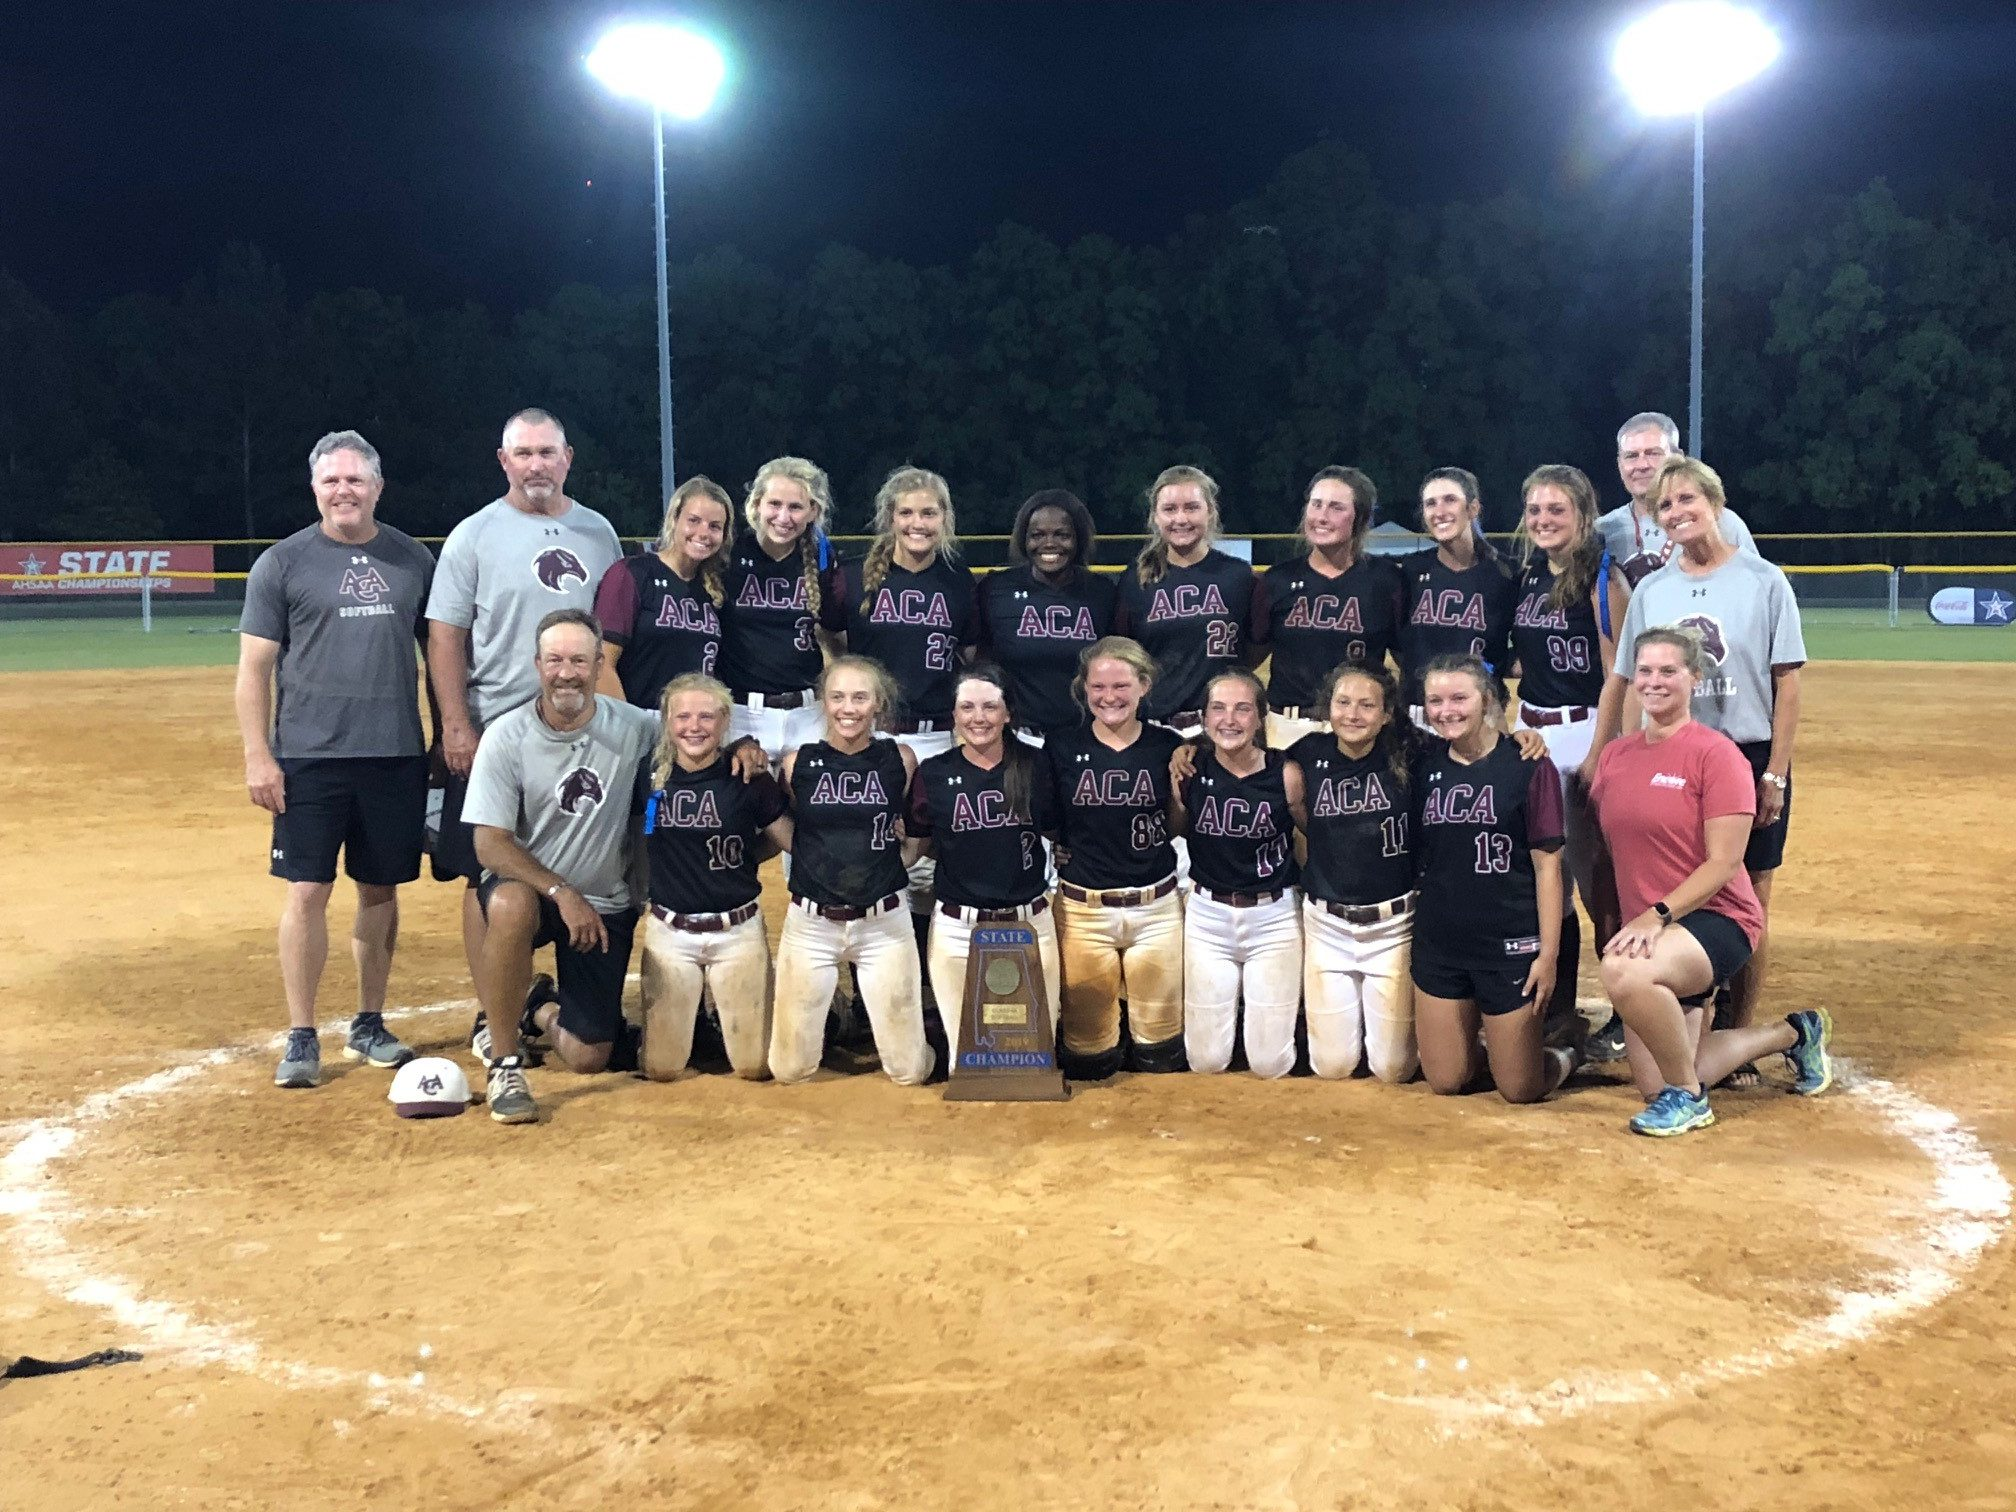 Alabama Christian Wins 4A State Title at AHSAA 2019 Softball Tourney at Lagoon Park